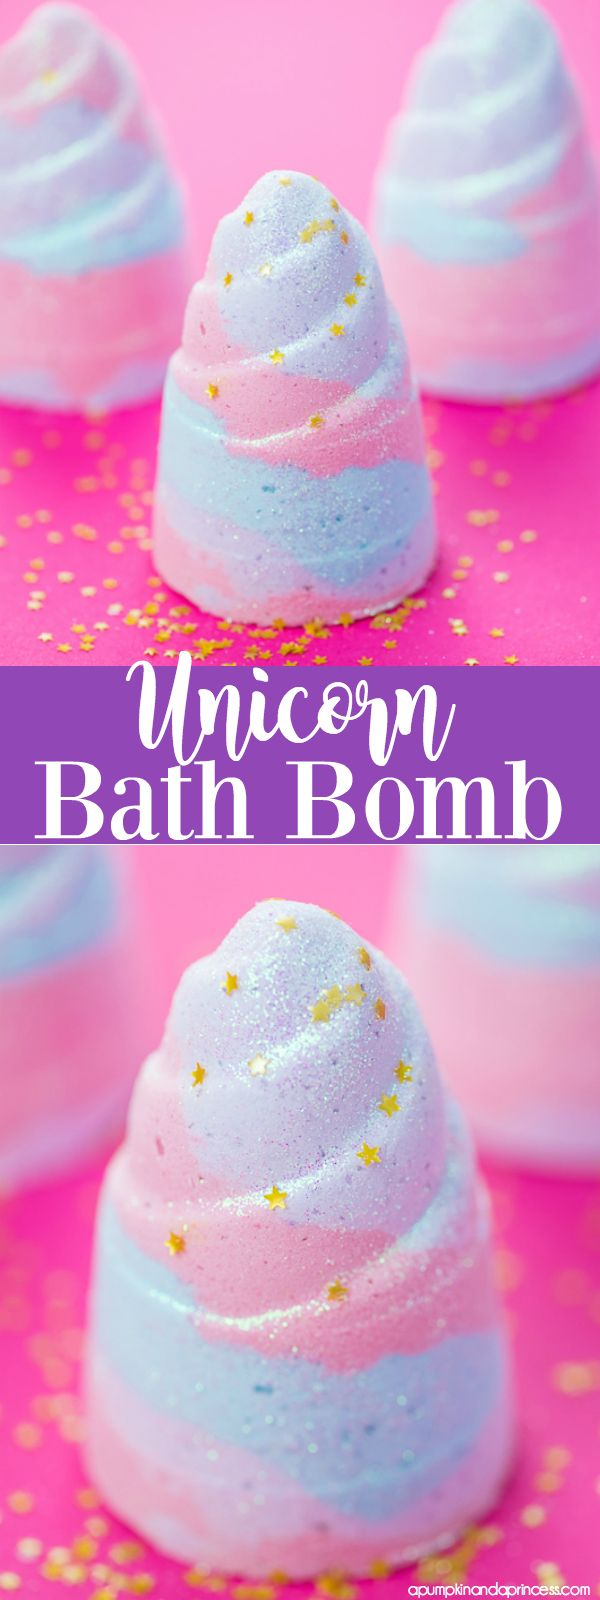 DIY Unicorn Bath Bomb - how to make a glitter unicorn horn bath bomb - easy Mother's Day gift idea!